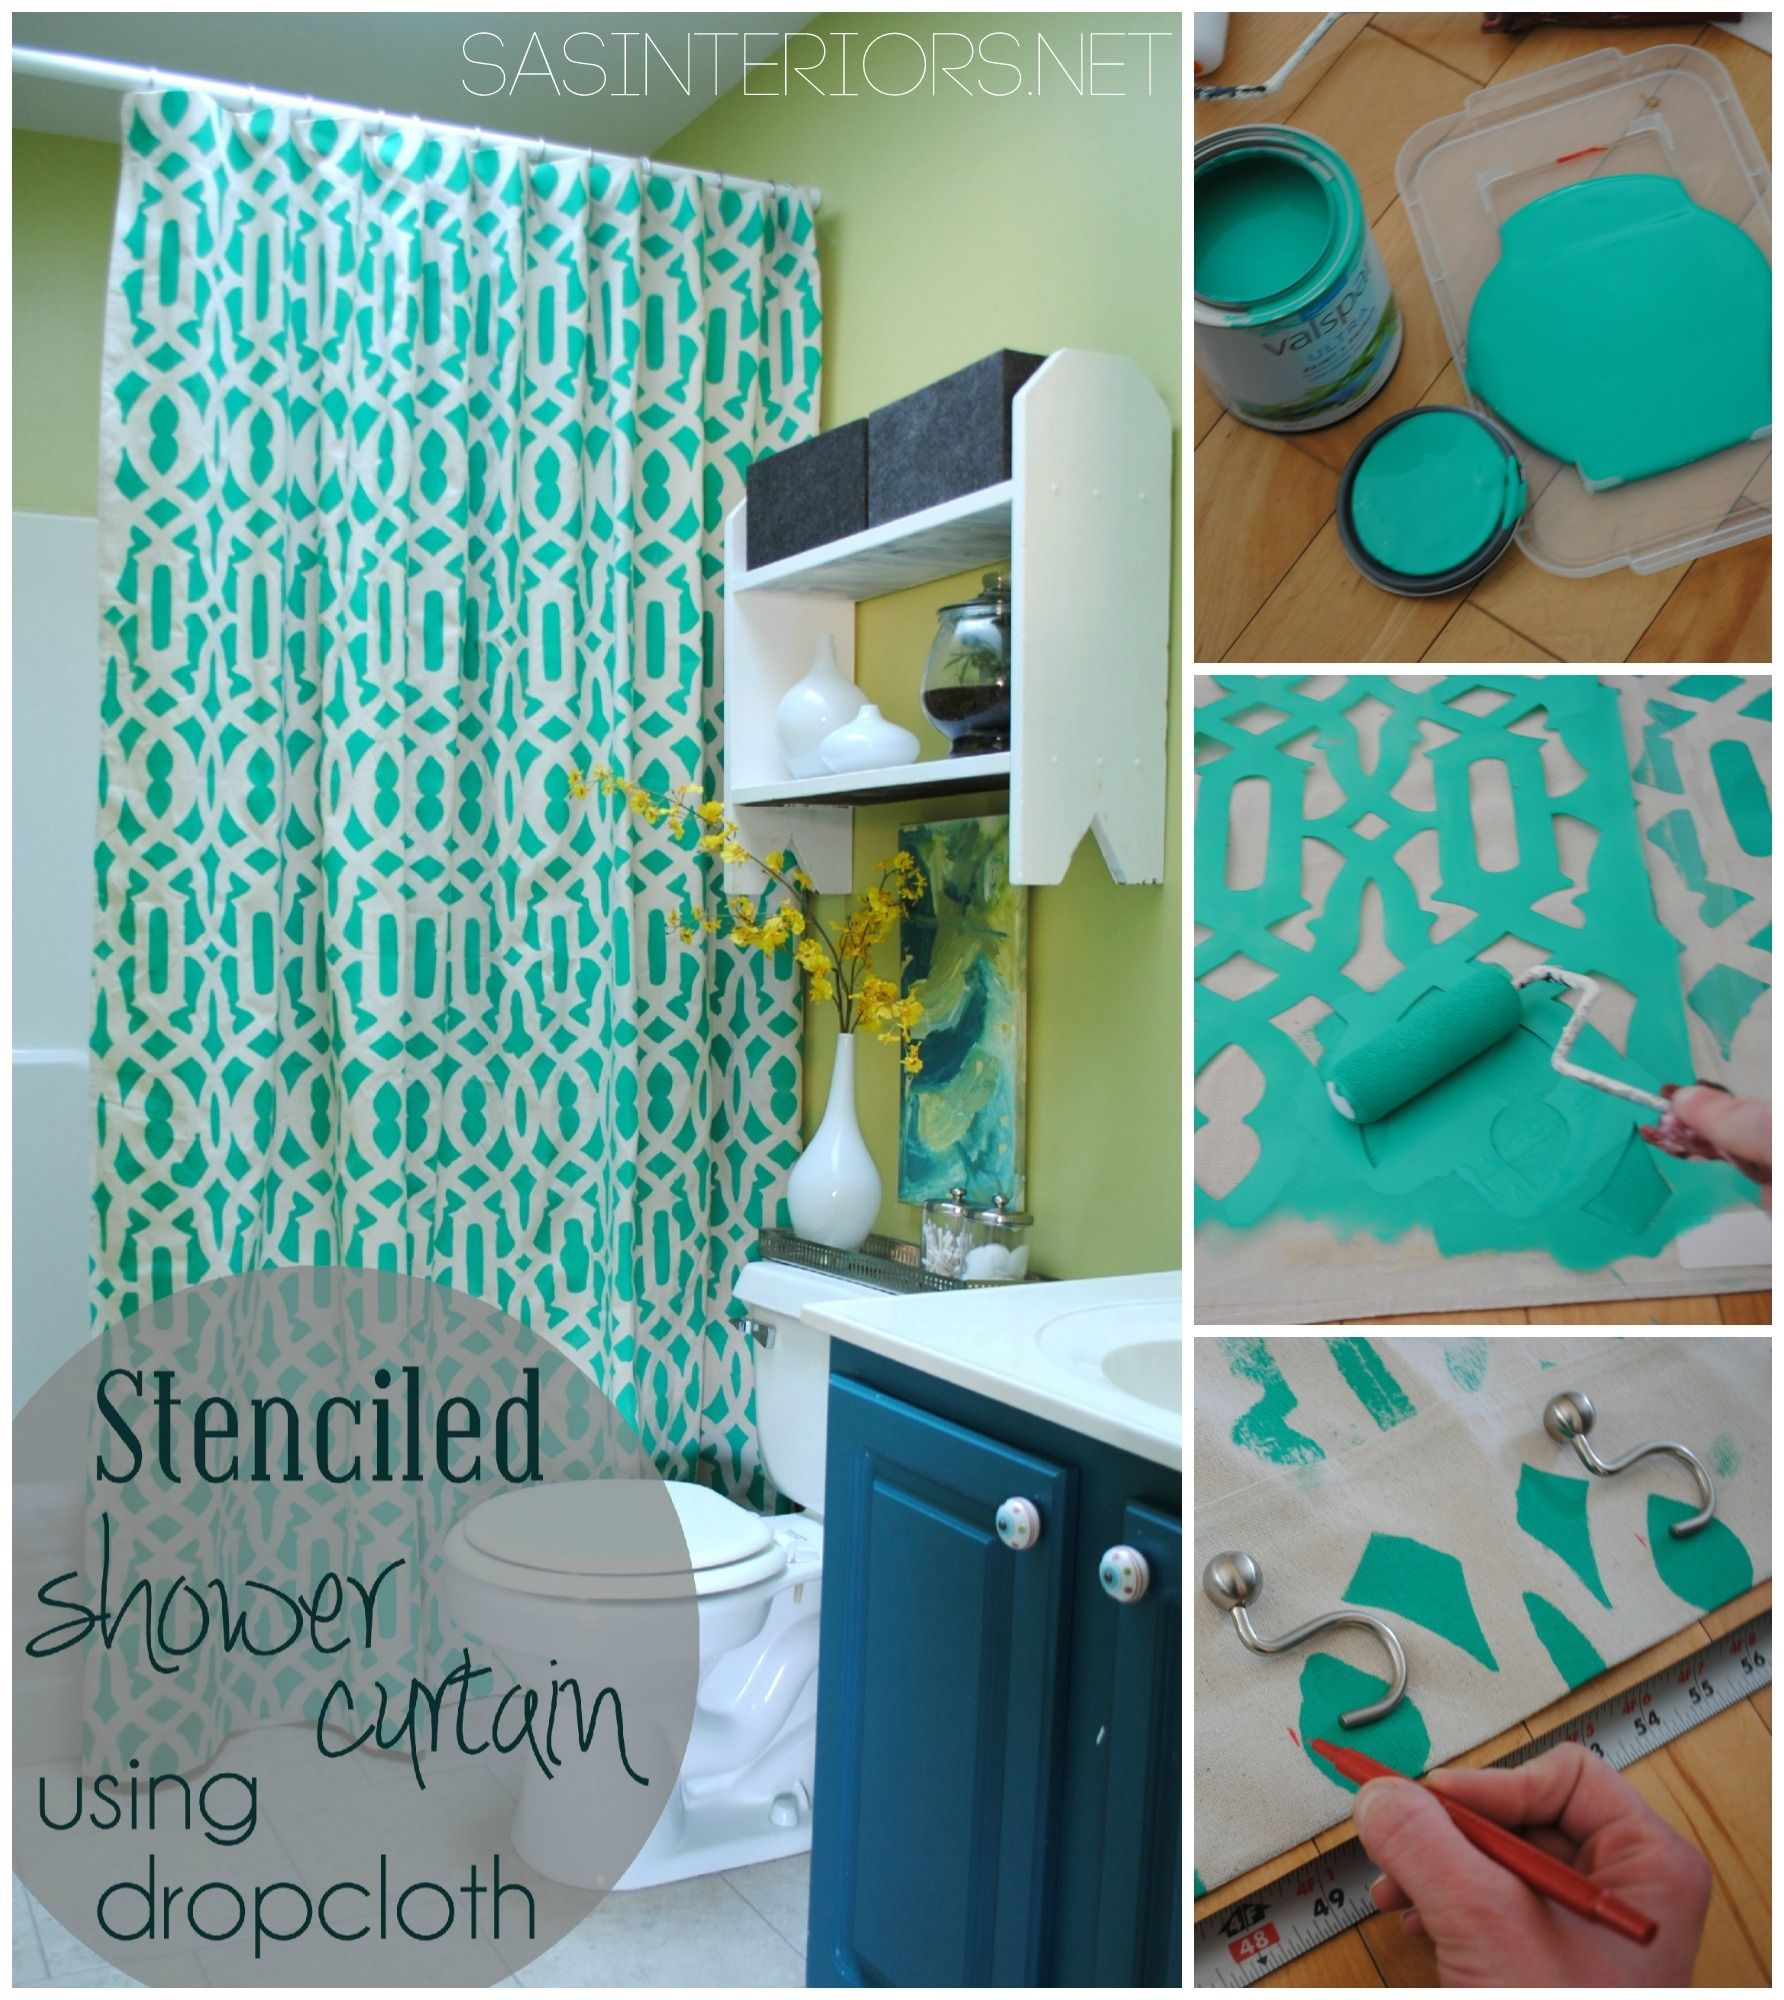 Diy stenciled shower curtain using drop cloth material super